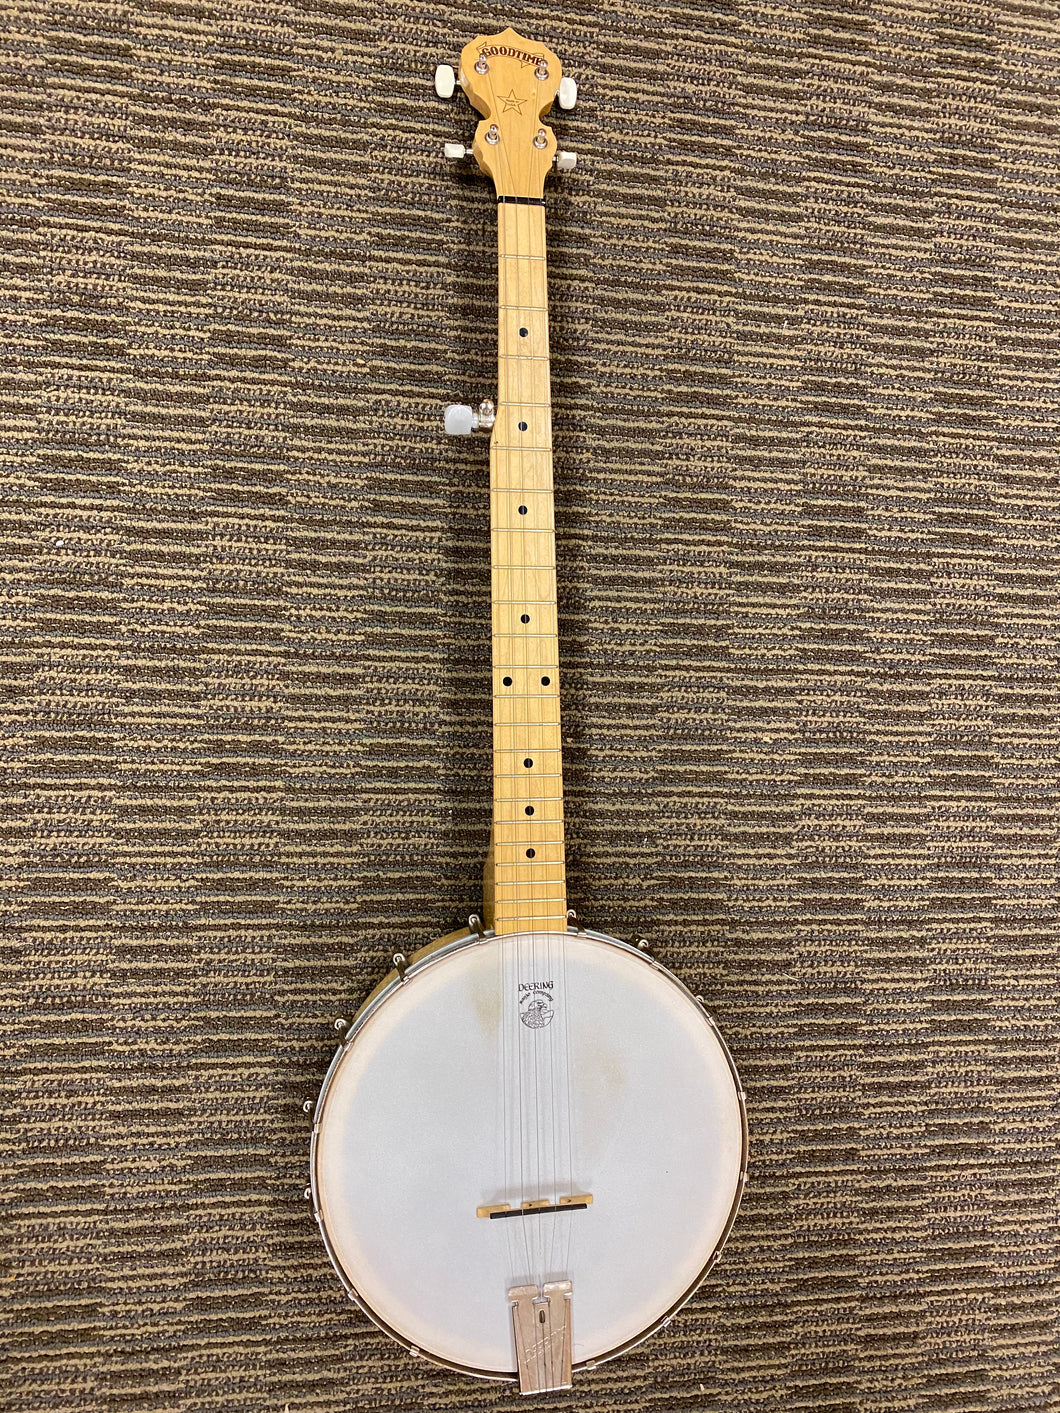 Deeering Good time banjo early 2000's